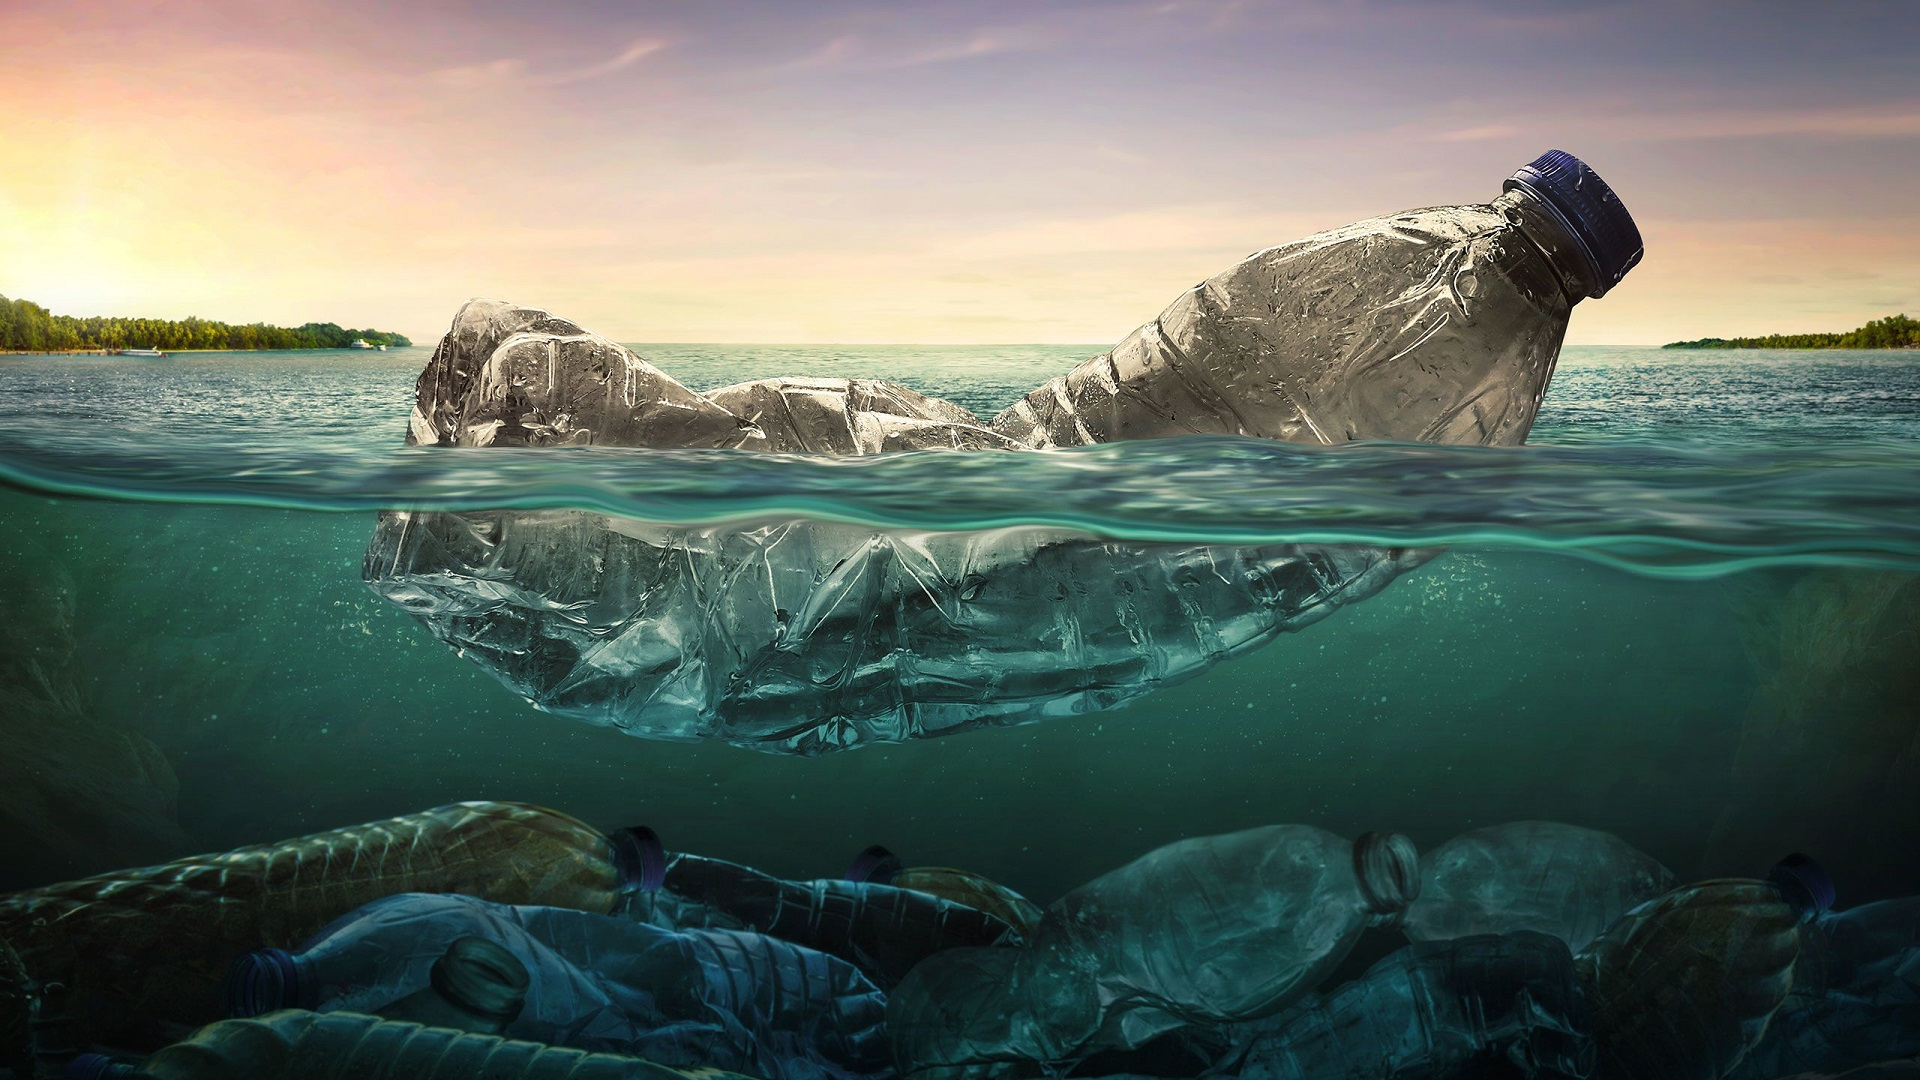 IS SUSTAINABILITY A REAL CONCERN FOR OUR PLANET?